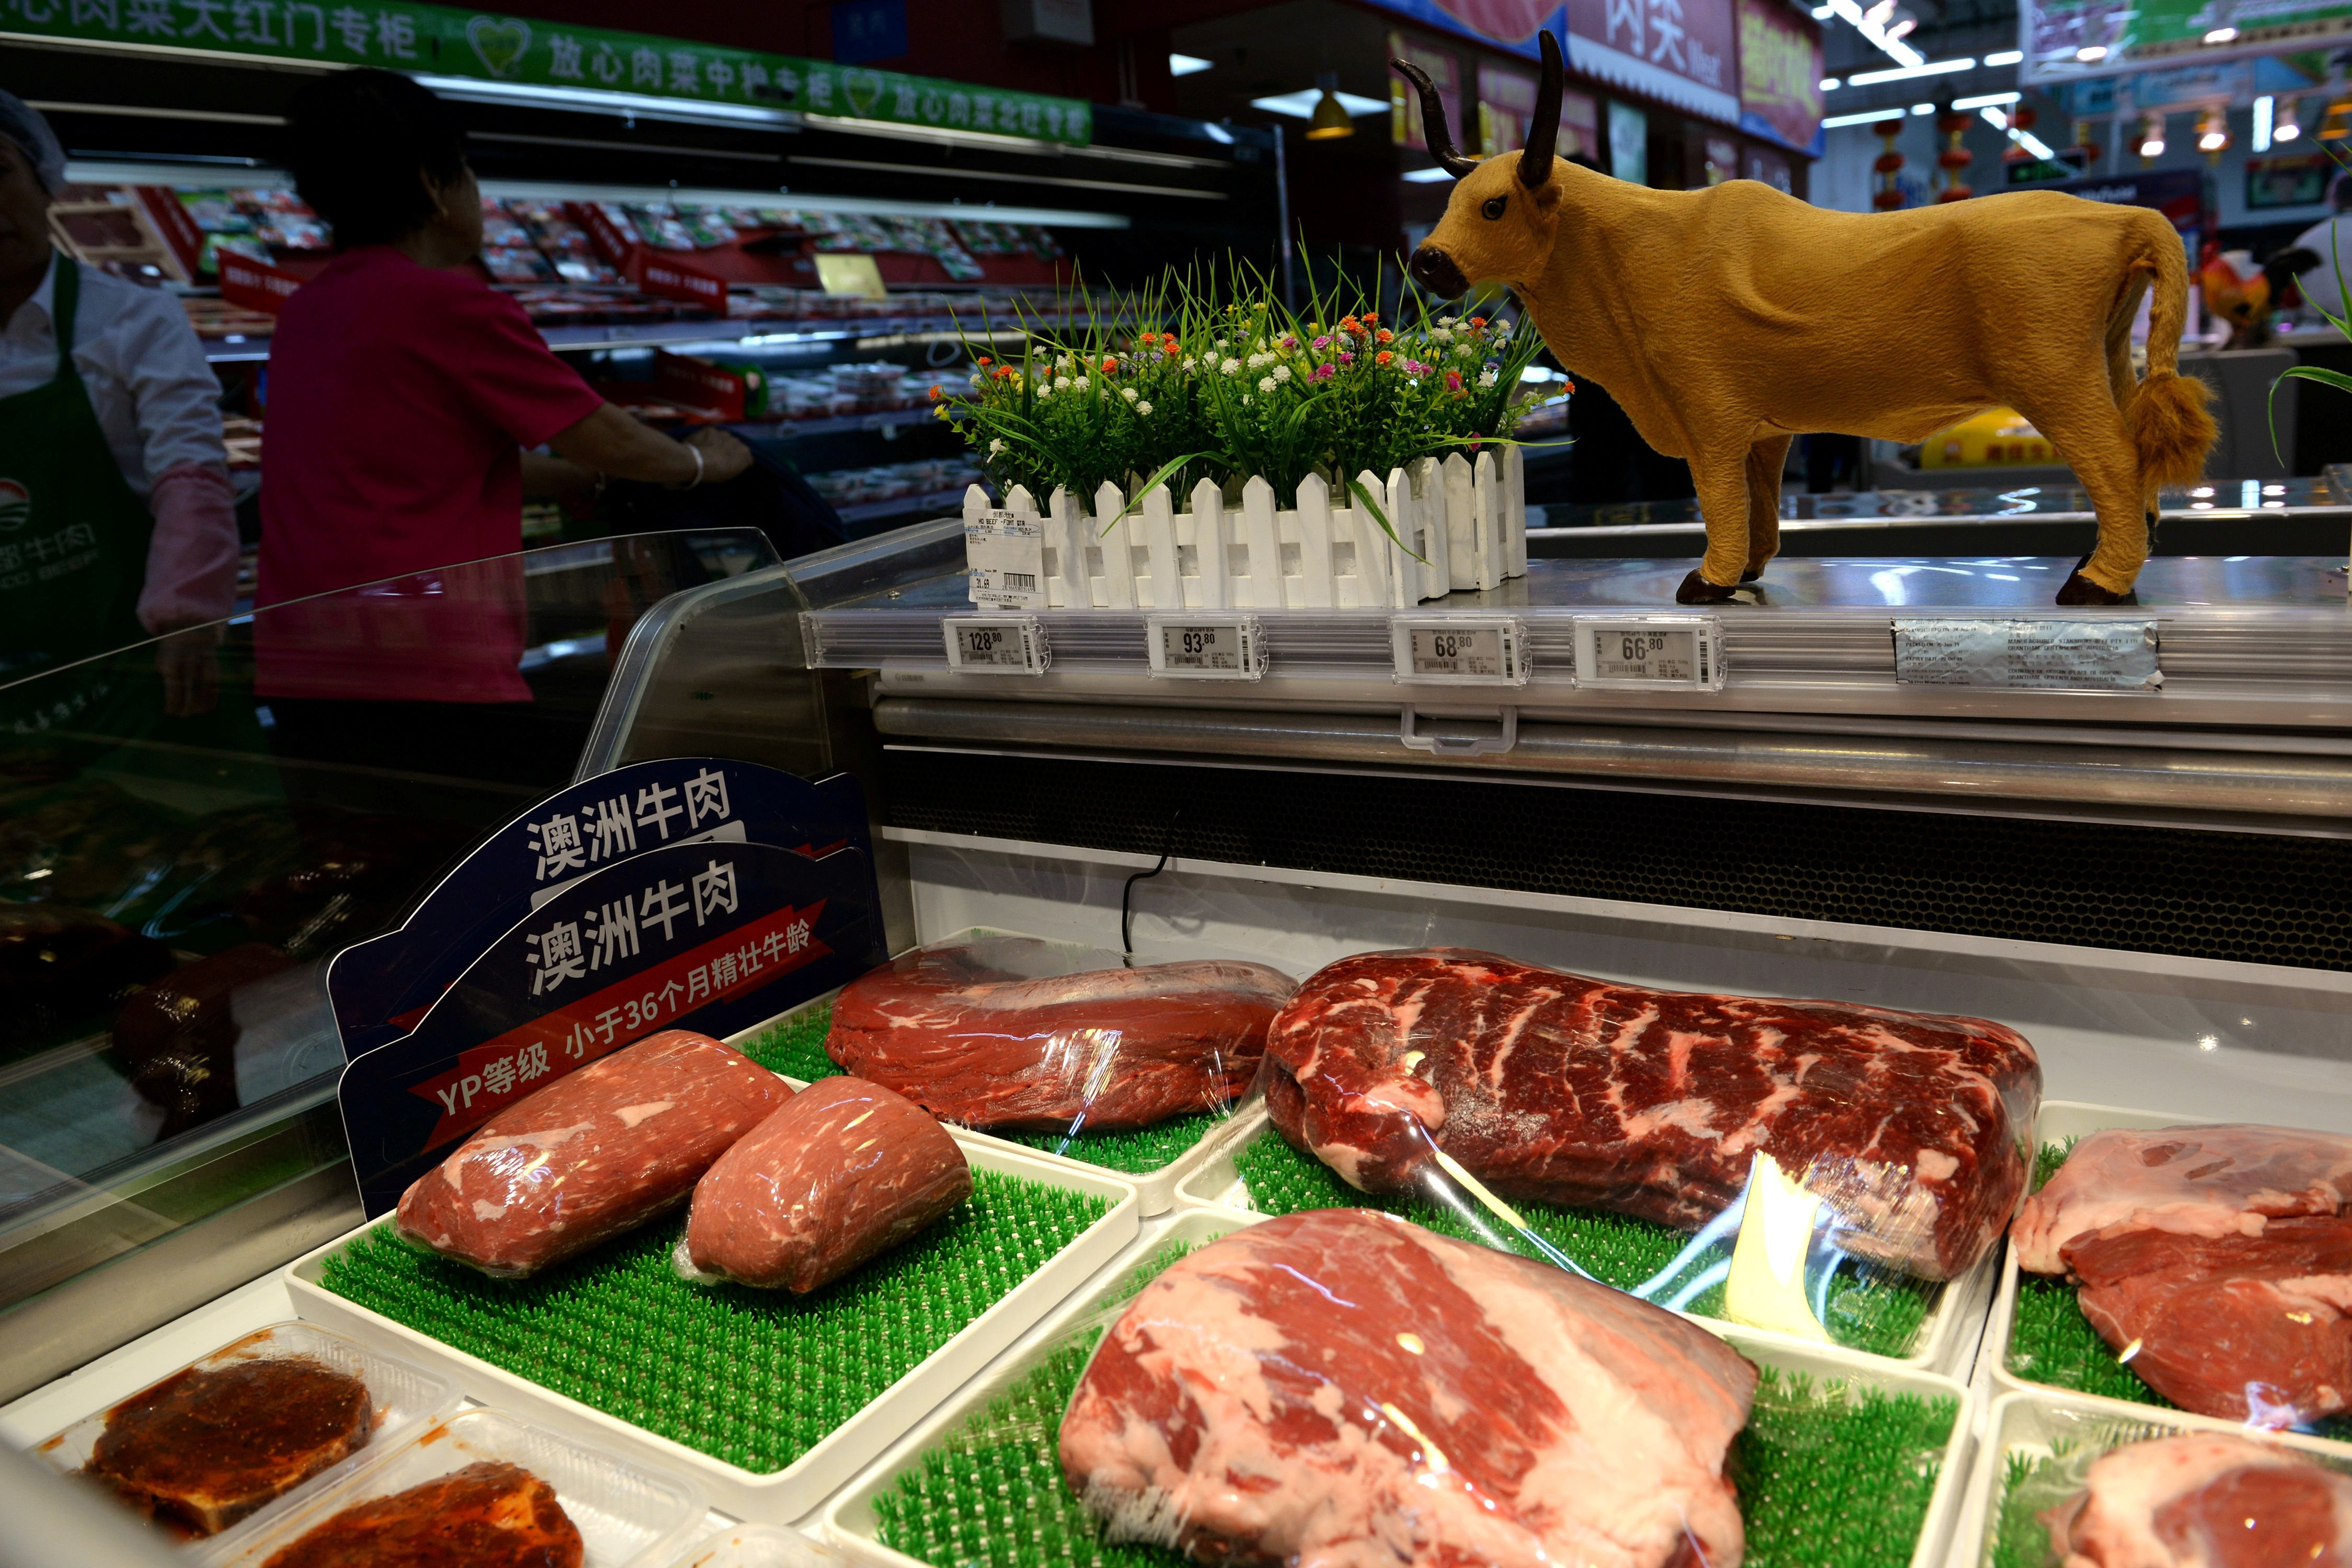 FILE PHOTO: Beef for sale is seen at a Walmart in Beijing, China, September 23, 2019. Picture taken September 23, 2019. REUTERS/Tingshu Wang/File Photo